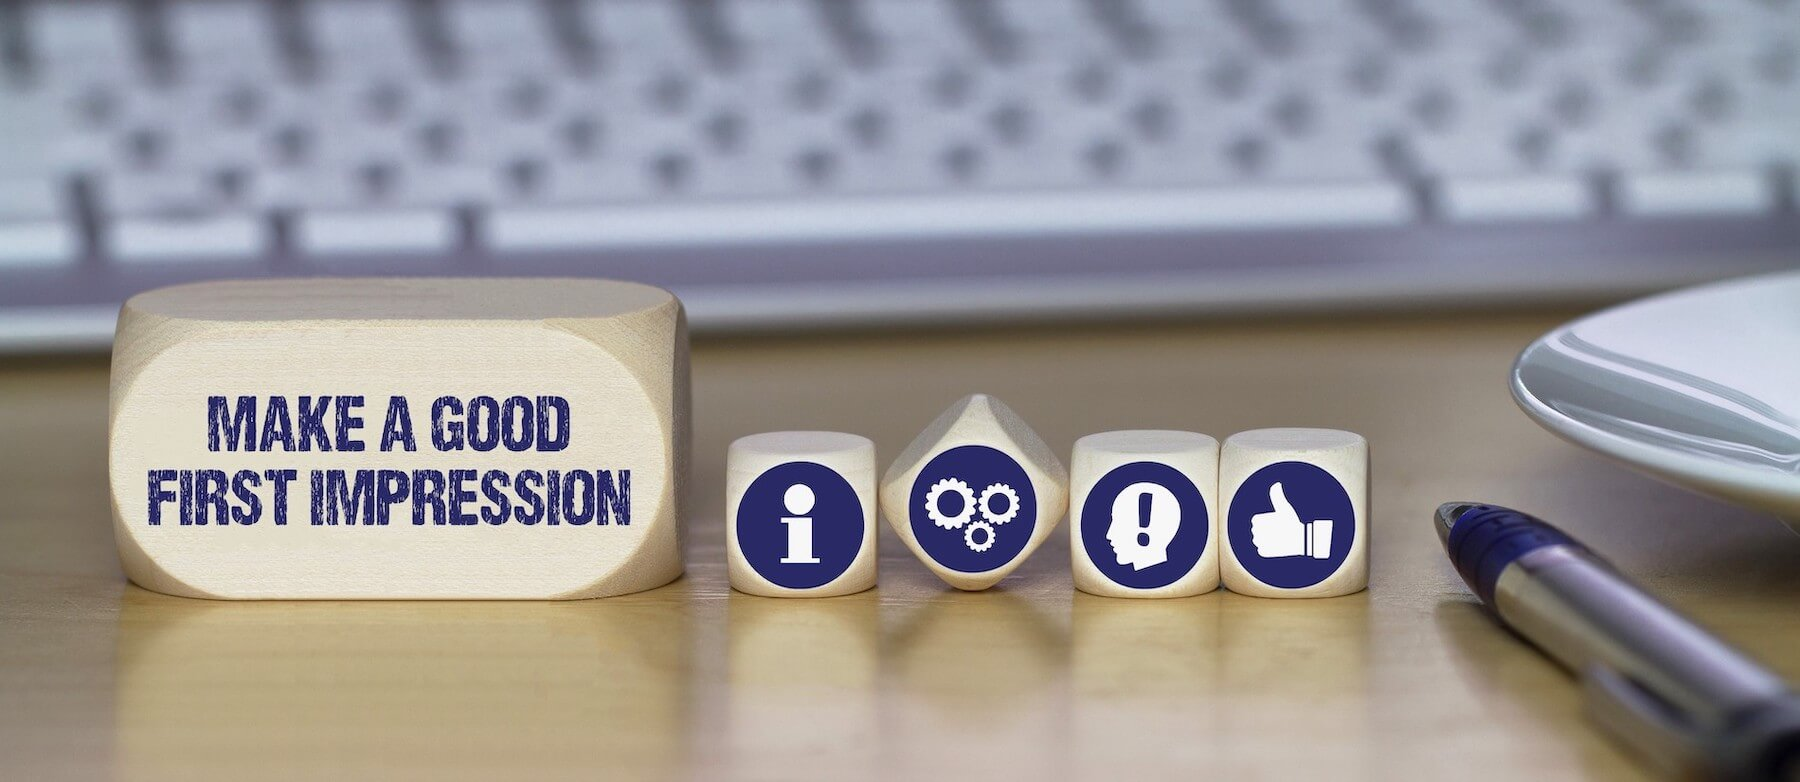 "Keyboard on desk behind social media icons on wooden cubes with the text ""make a good first impression"" on a larger rectangle"